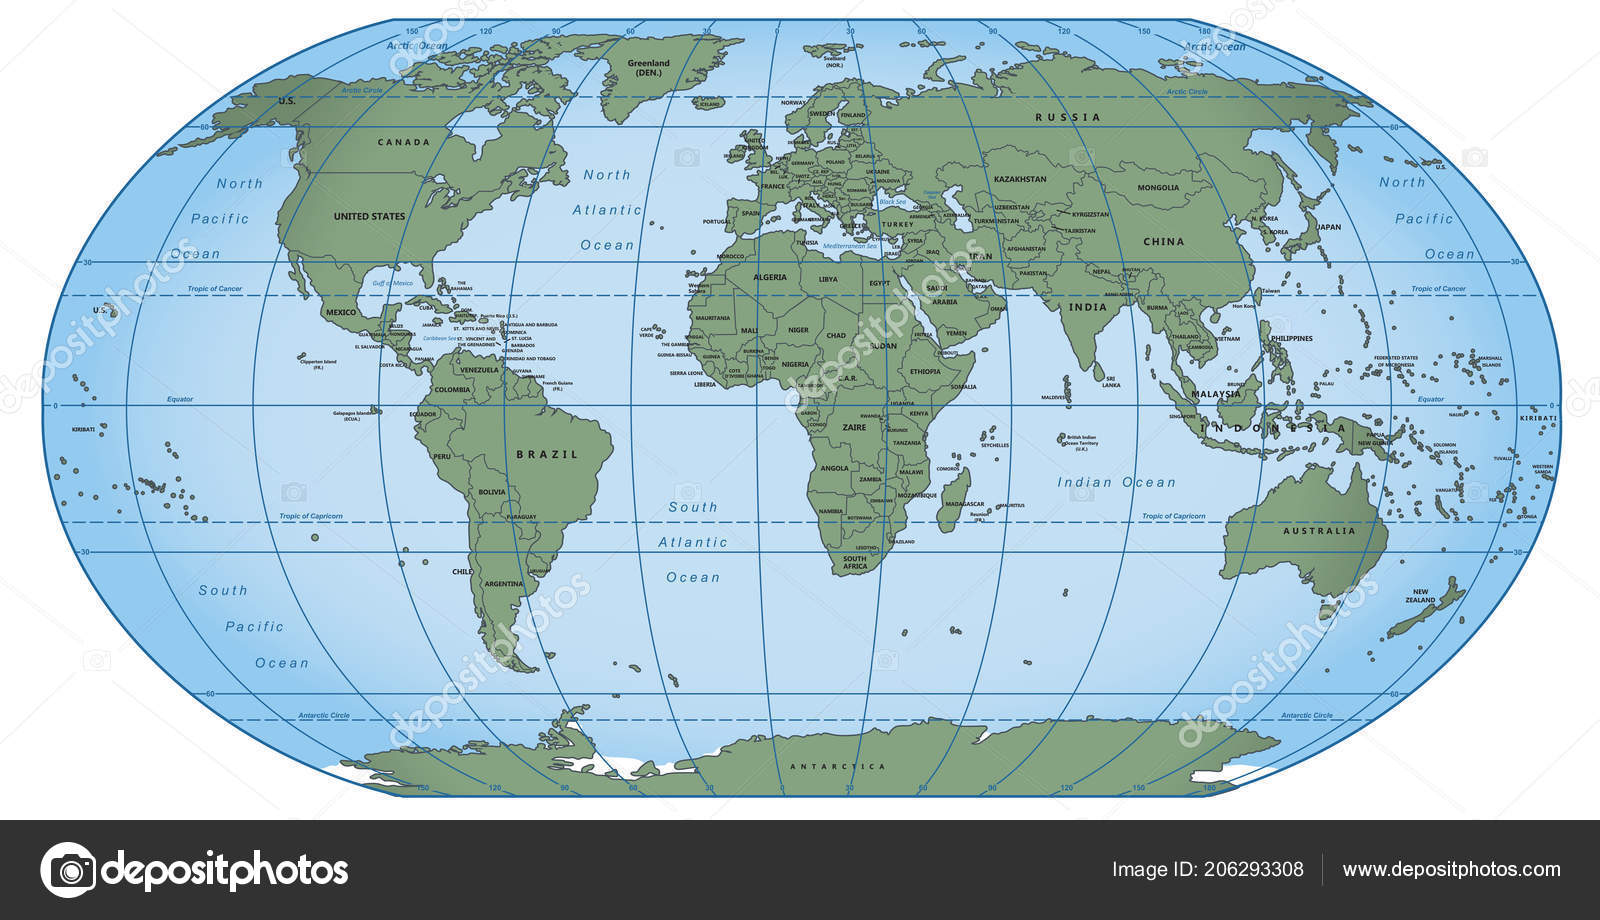 Large Political Map World Robinson Projection Vector ... on peters projection map of the world, national map of the world, geophysics map of the world, present day map of the world, military map of the world, ranger's apprentice map of the world, show a map of the world, new yorker map of the world, game of thrones map of the world, elder scrolls map of the world, climate zone map of the world, entire map of the world, a physical map of the world, strategic map of the world, topological map of the world, physical features map of the world, diplomatic map of the world, skin color map of the world, a large map of the world, ronald reagan map of the world,